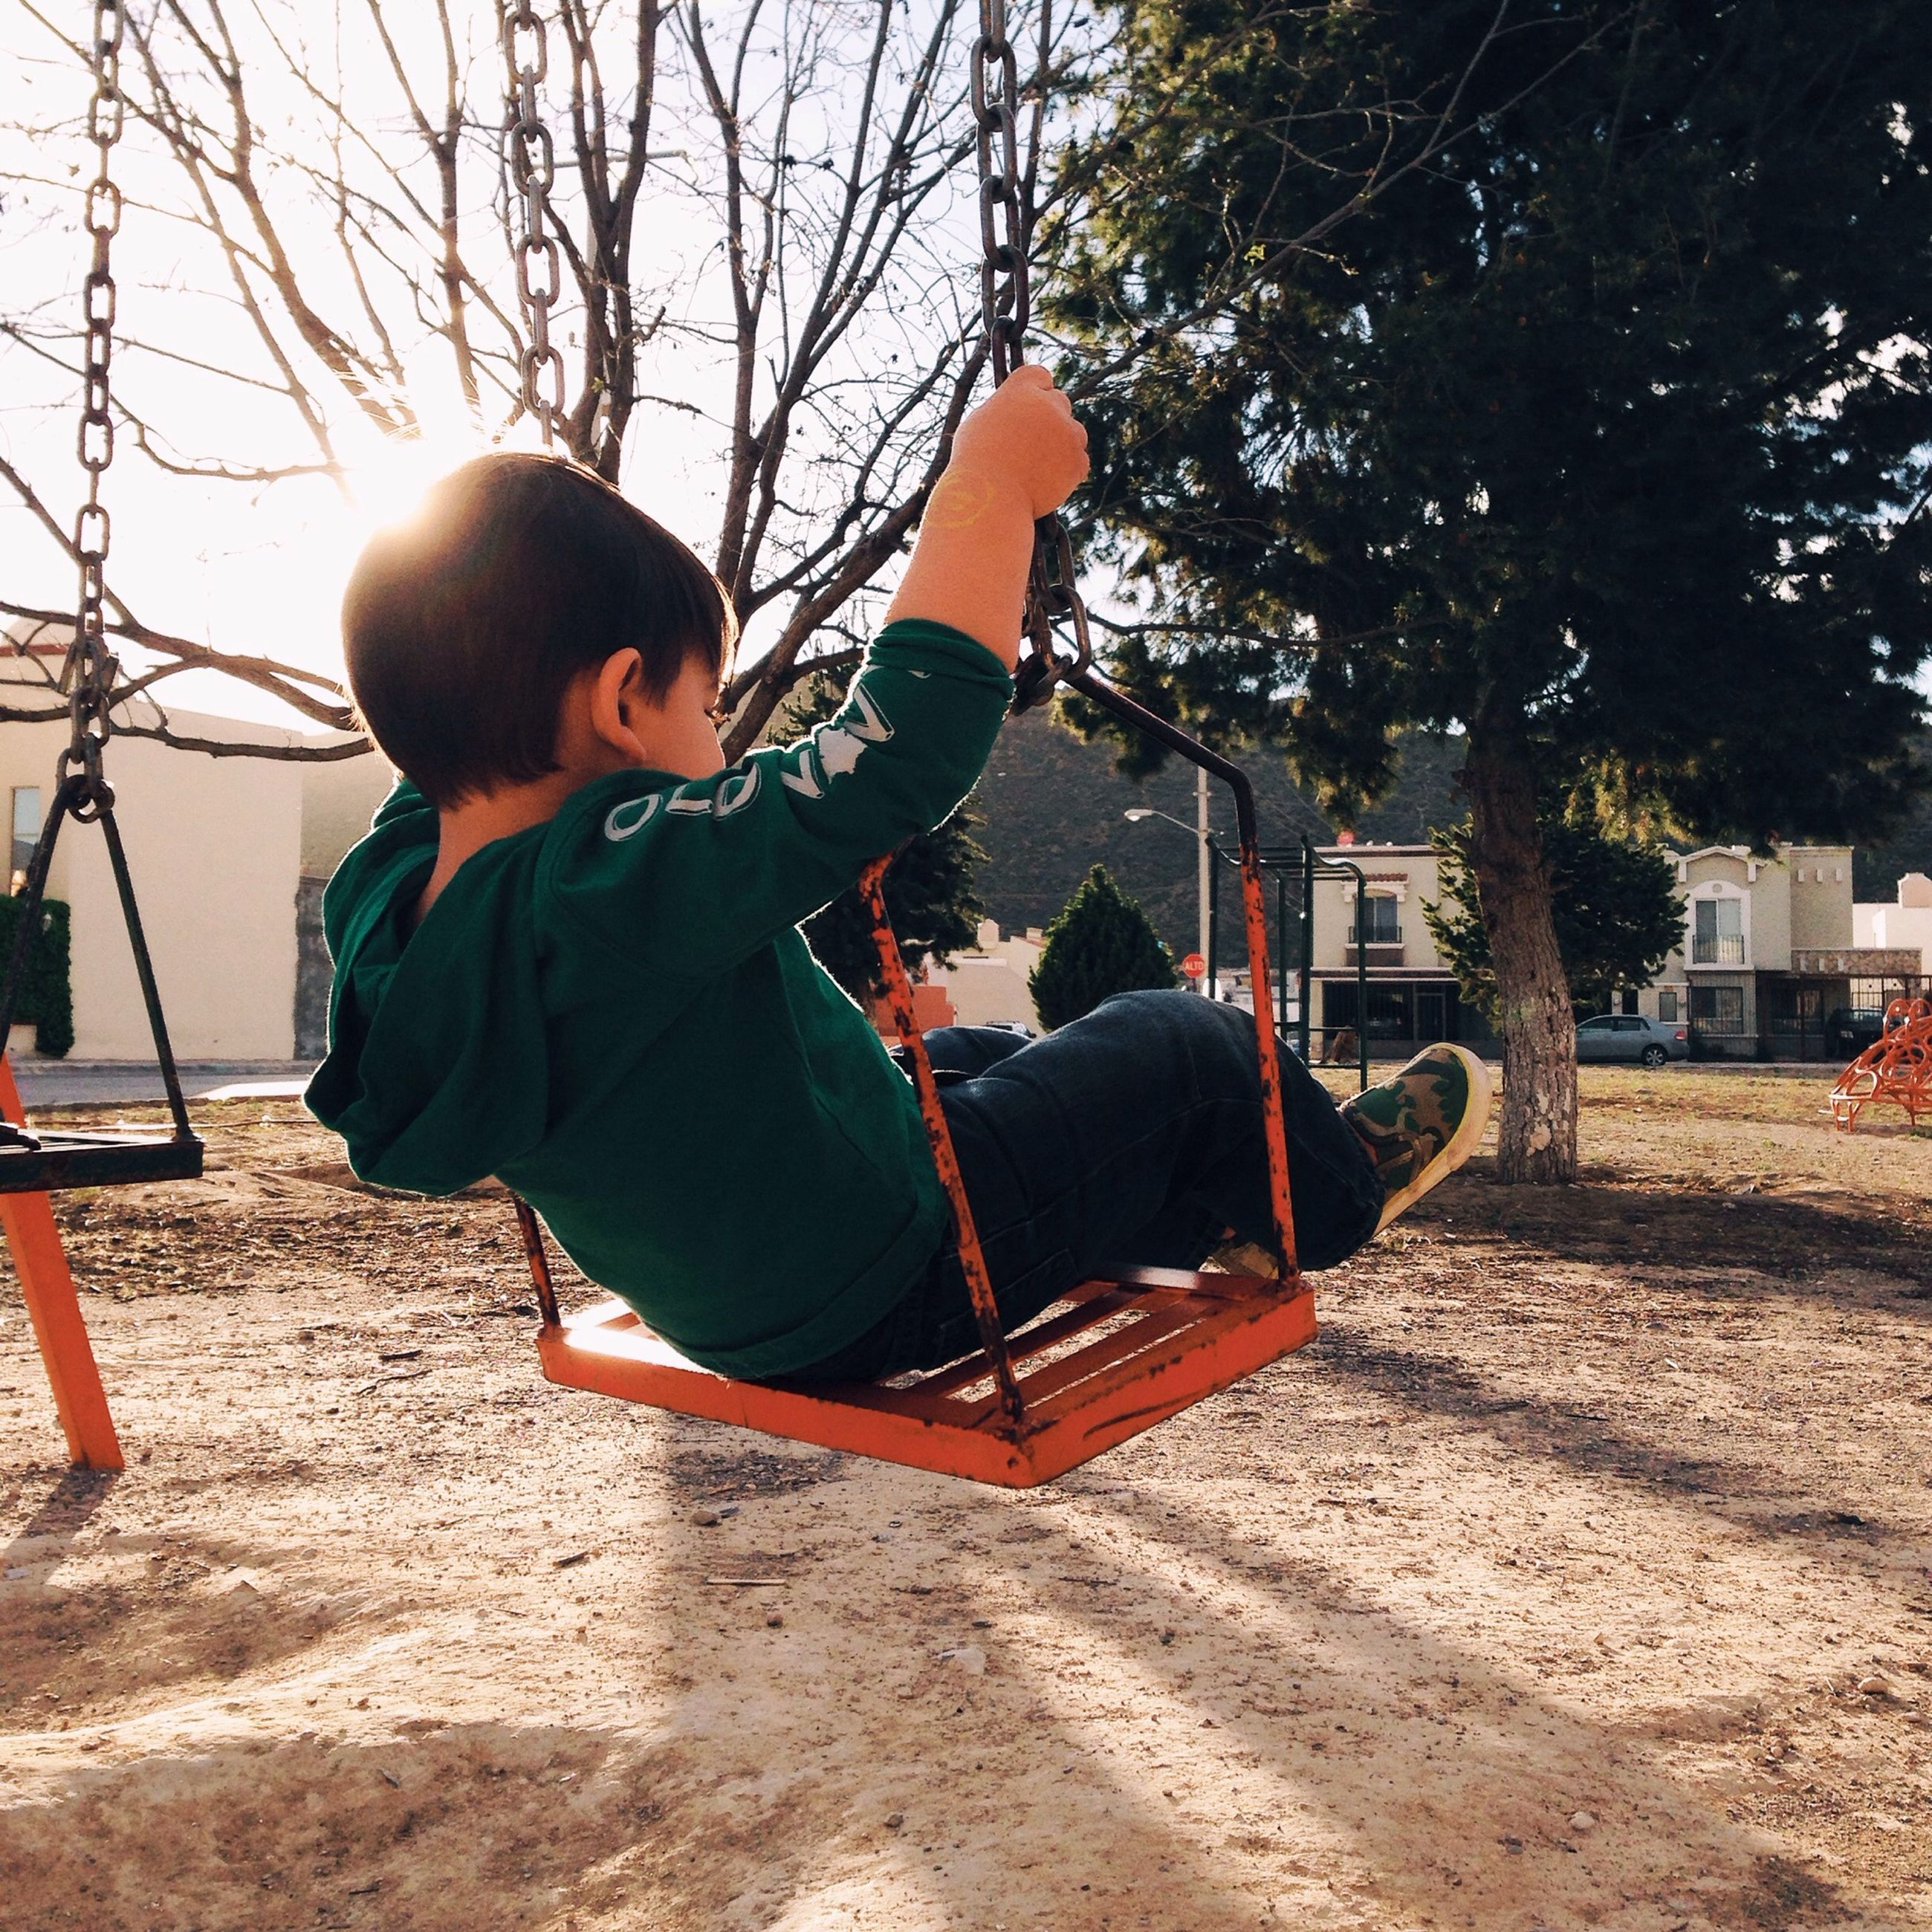 childhood, leisure activity, lifestyles, tree, full length, casual clothing, boys, swing, playground, playing, elementary age, sitting, girls, person, holding, rear view, day, outdoors